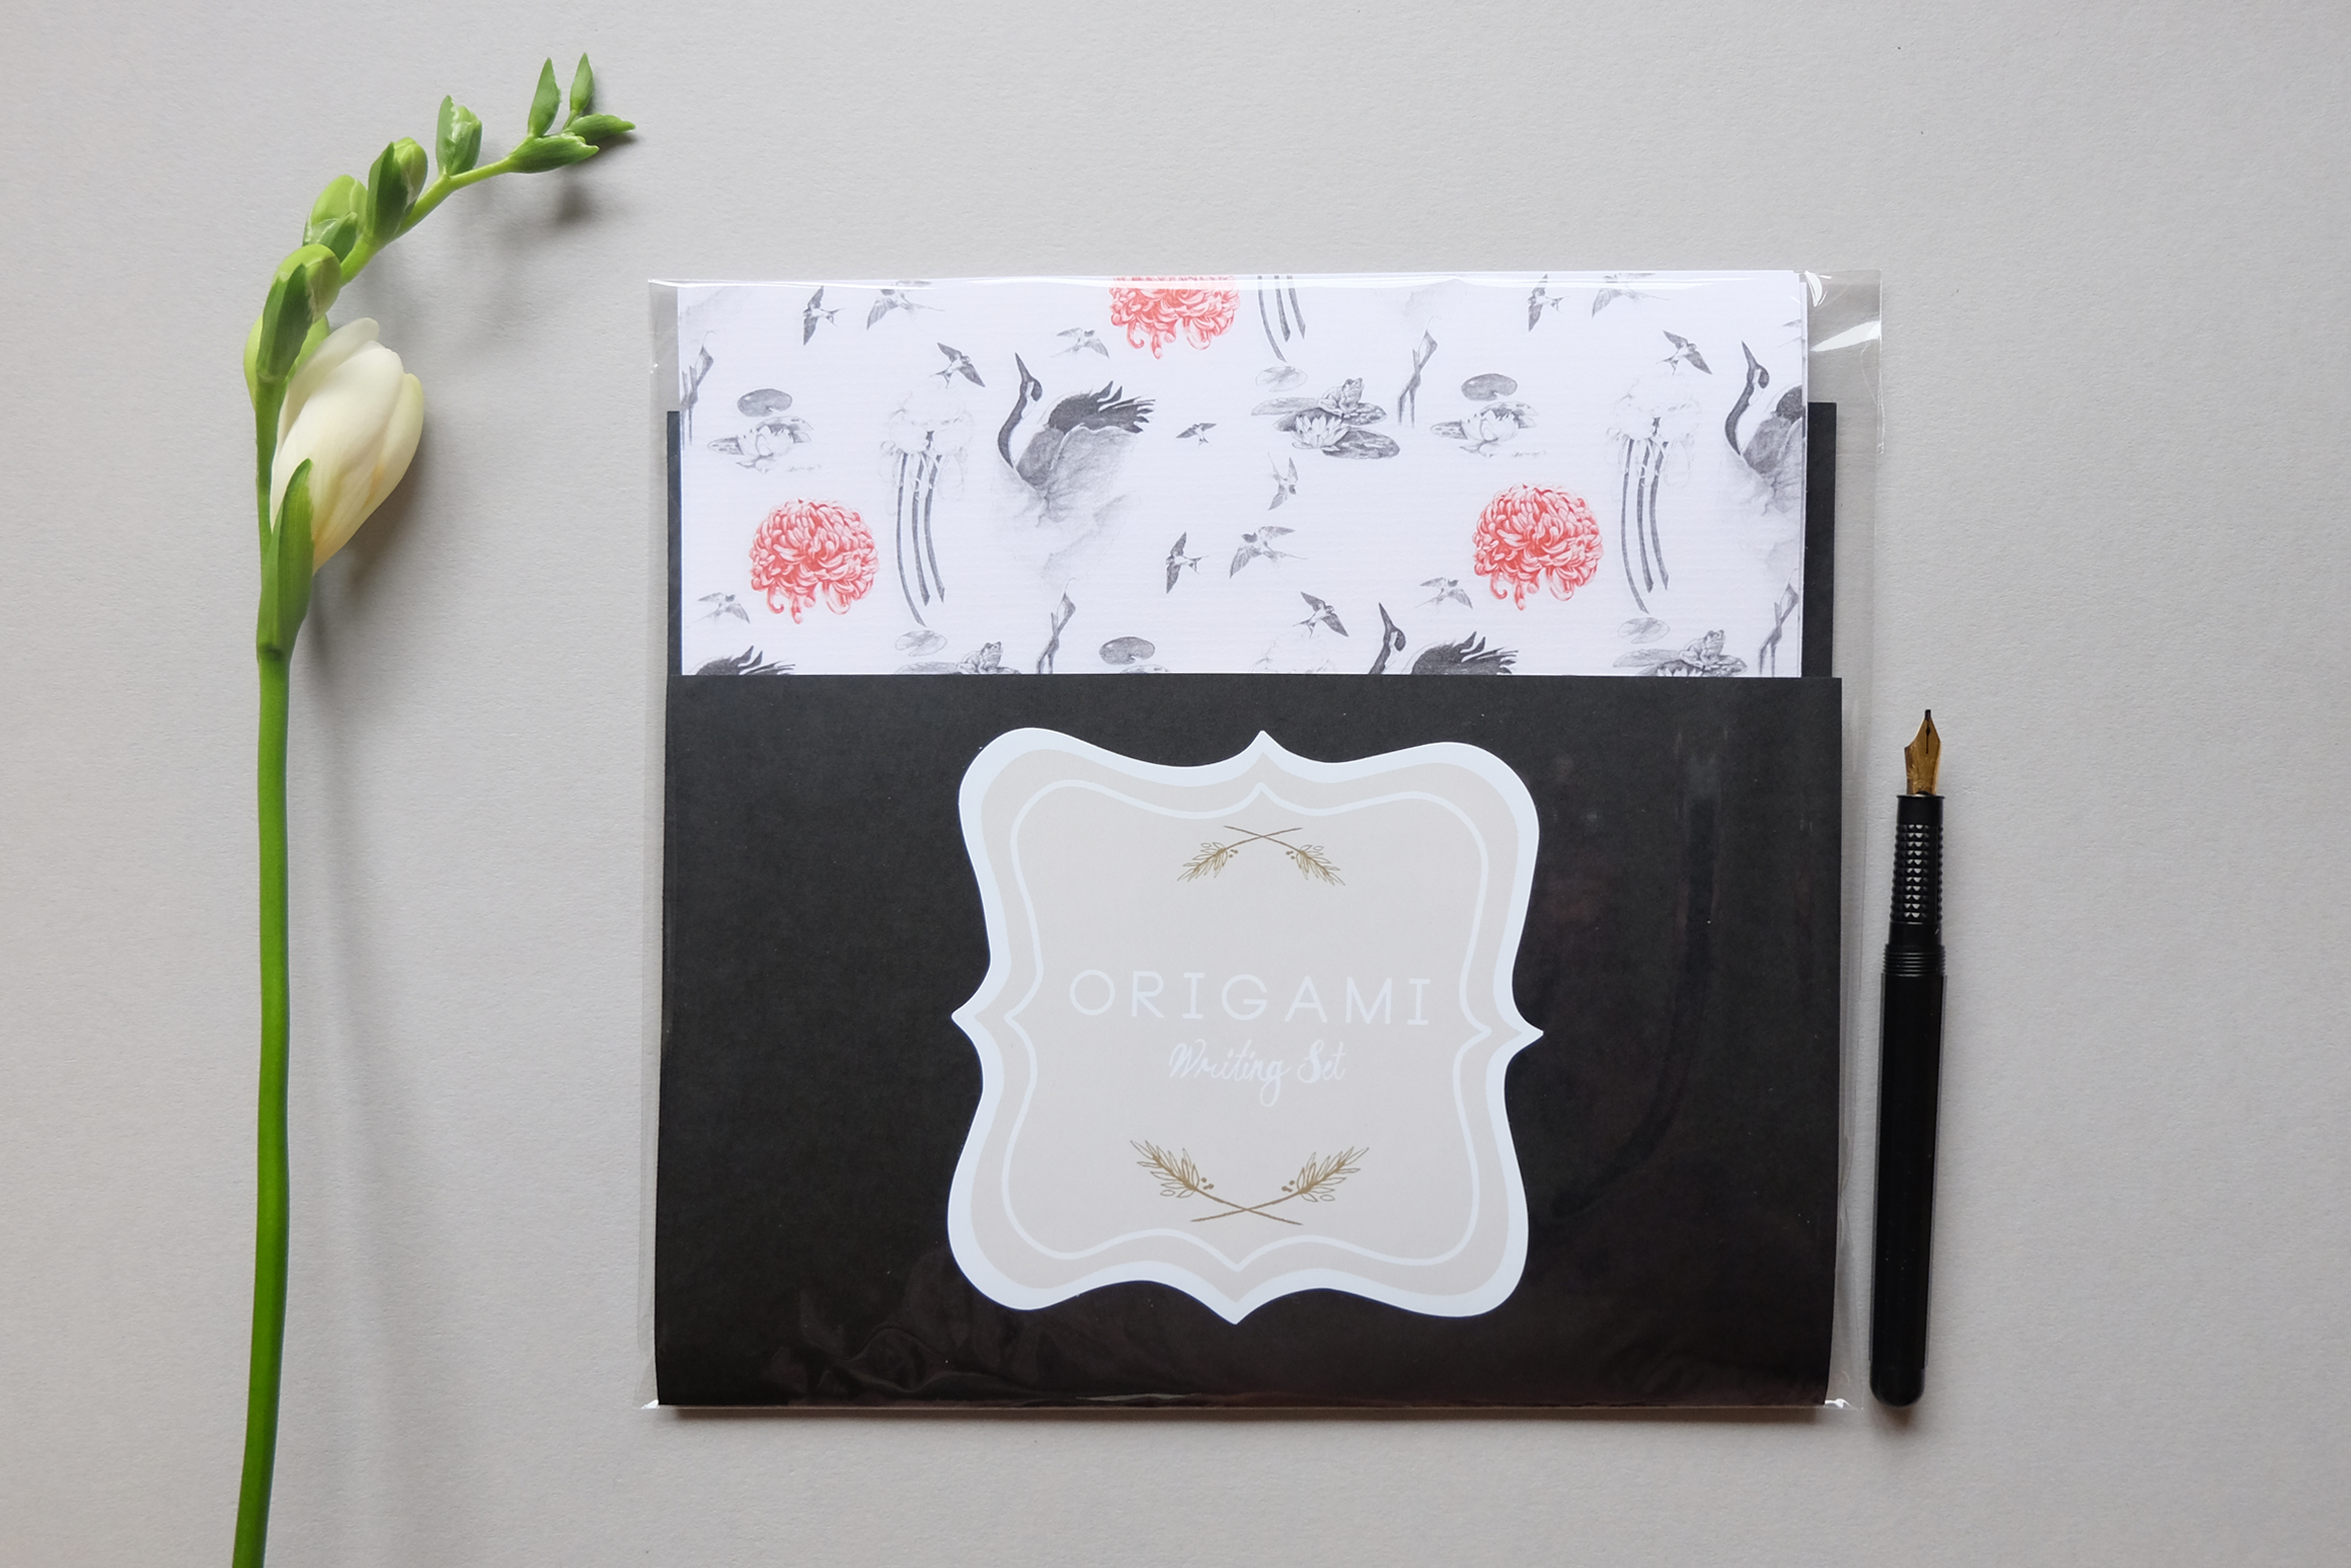 Japanese Origami Writing Set £11.40